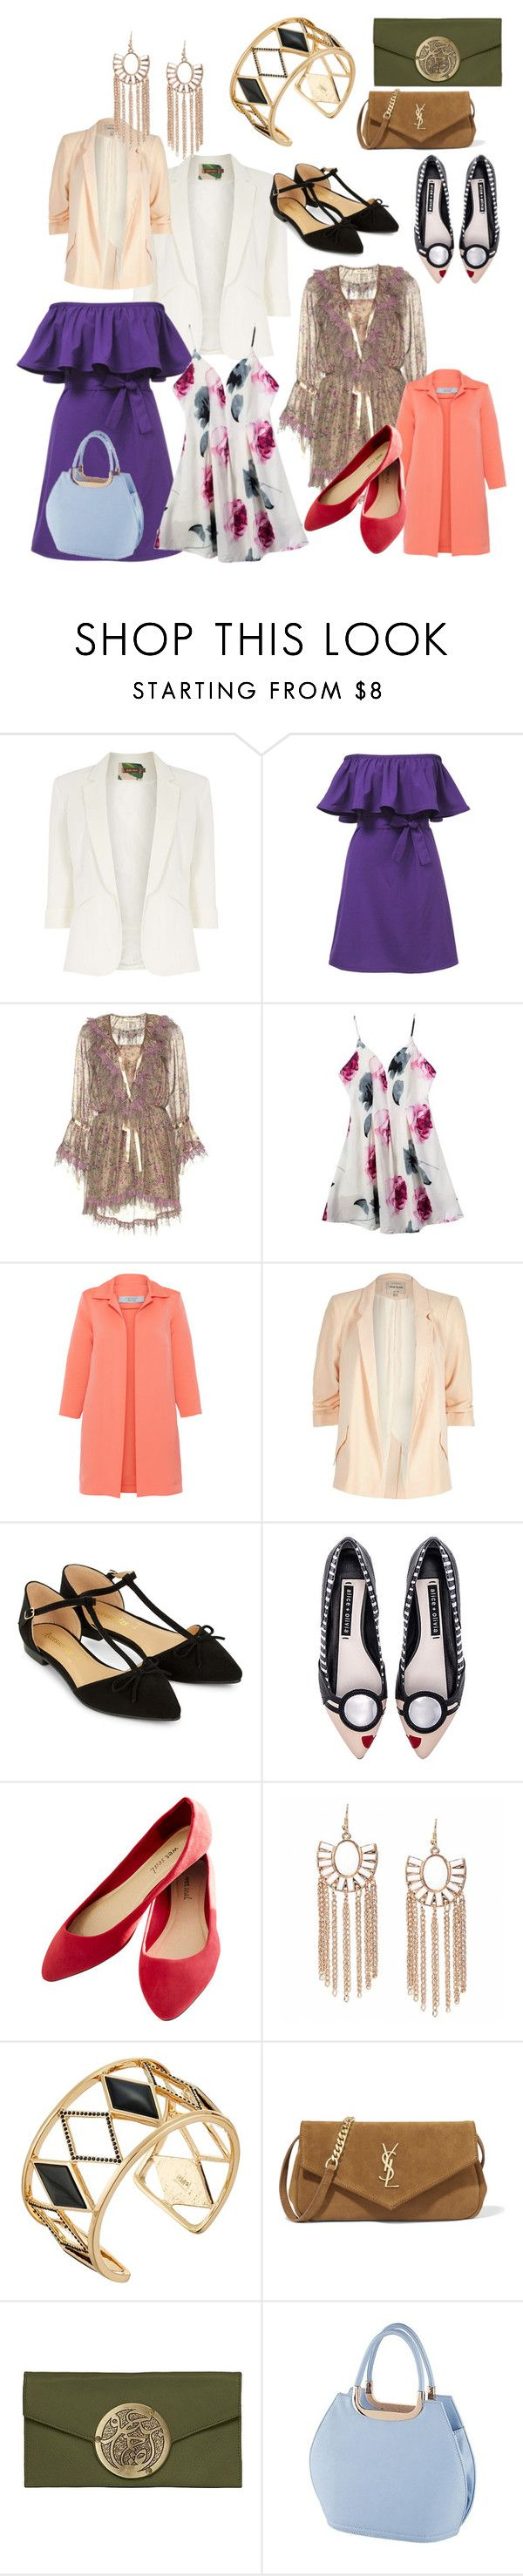 """körte testalkat"" by xaxa-szasza on Polyvore featuring Jolie Moi, Etro, D.Exterior, River Island, Accessorize, Alice + Olivia, Wet Seal, Rebecca Minkoff, Yves Saint Laurent and Dareen Hakim"